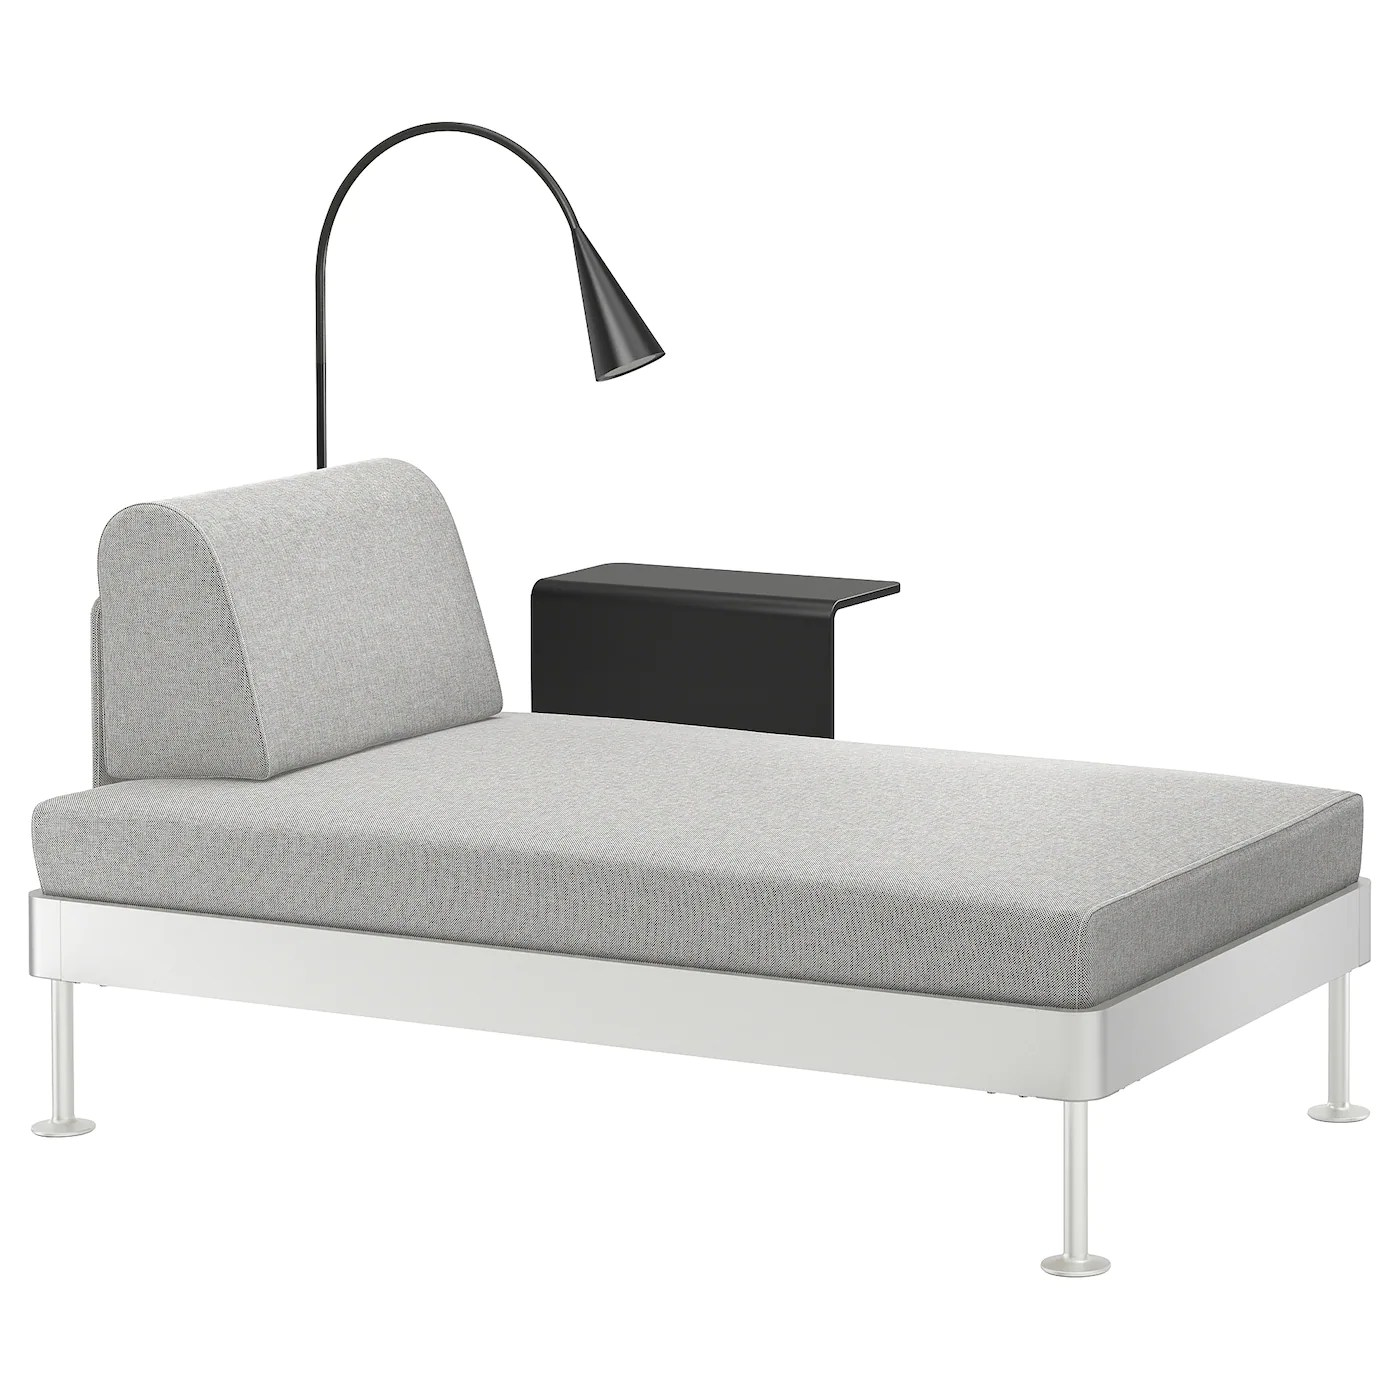 Chause Longue Delaktig Chaise Longue W Side Table And Lamp Tallmyra White Black